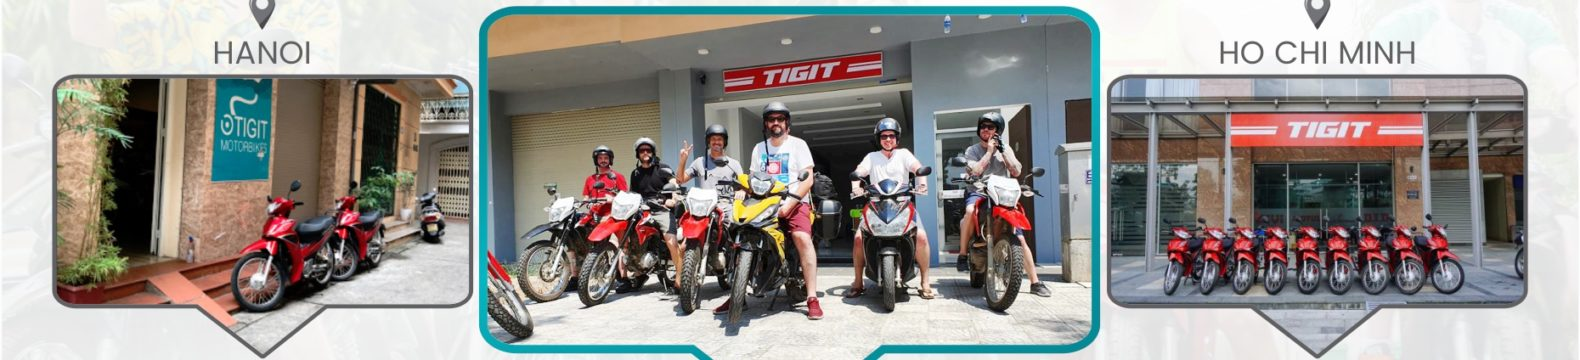 Danang Motorbike Rental Shop